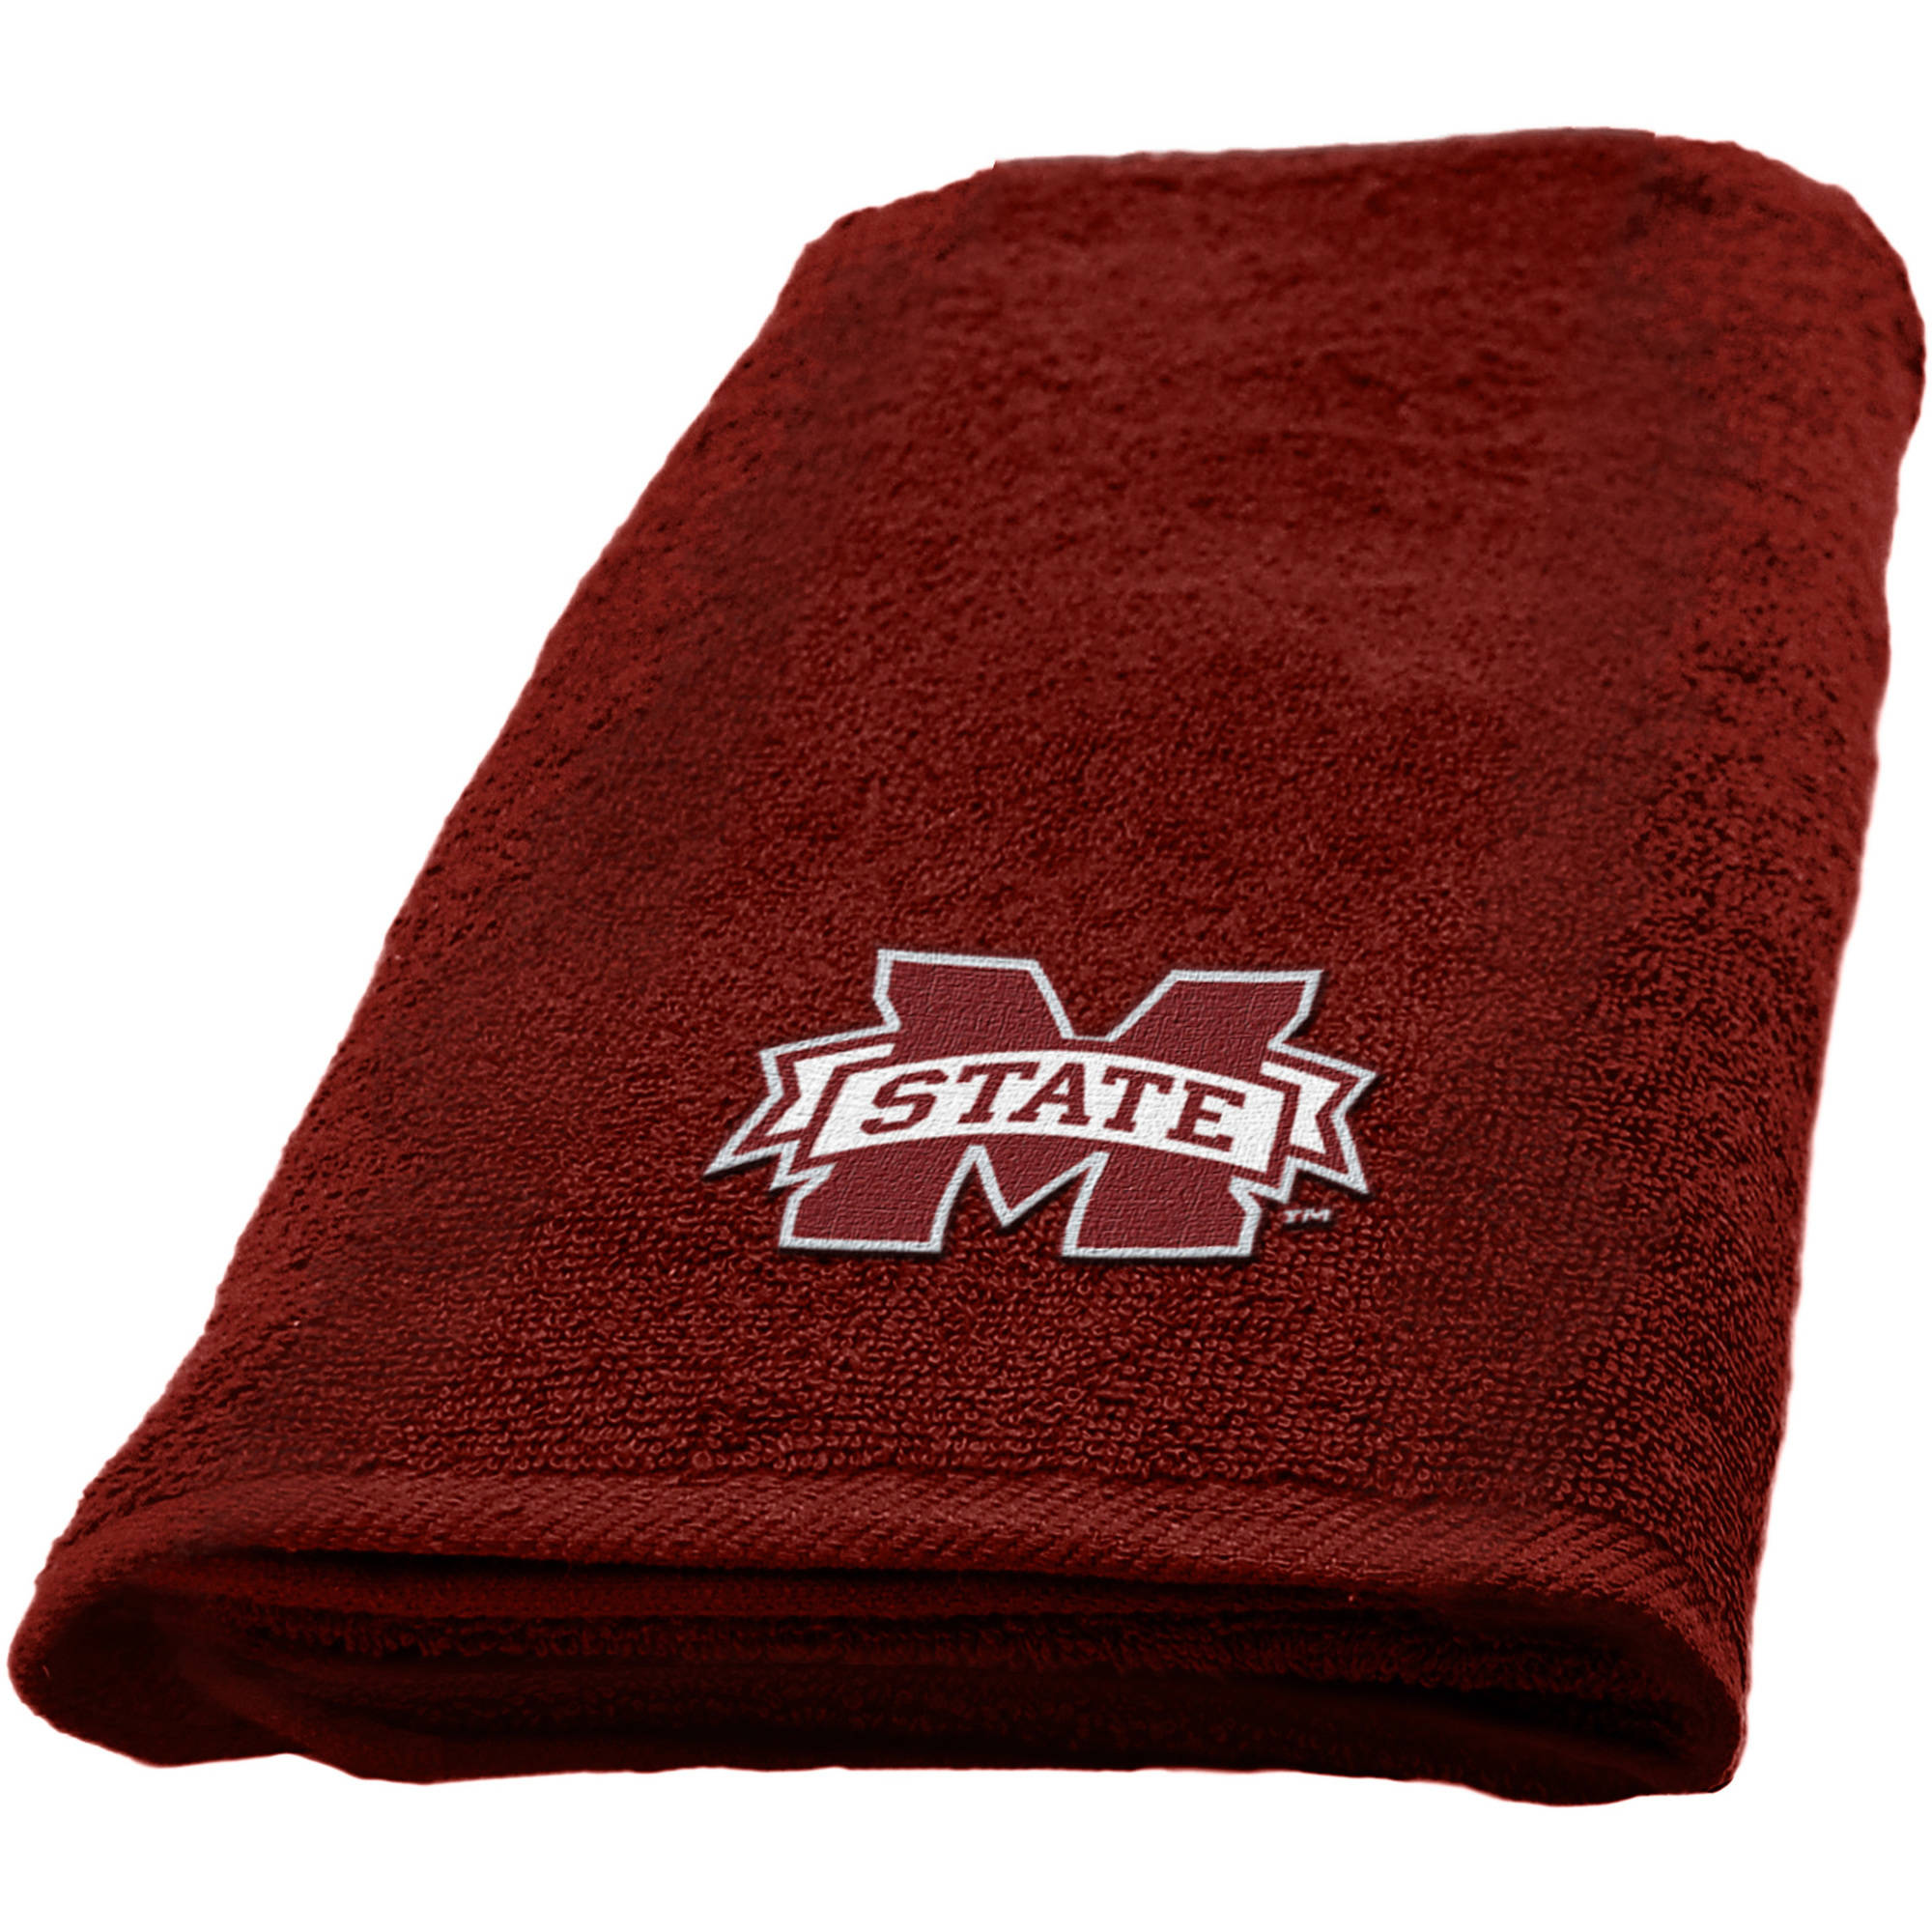 "NCAA Mississippi State Bulldogs 15""x26"" Applique Hand Towel"